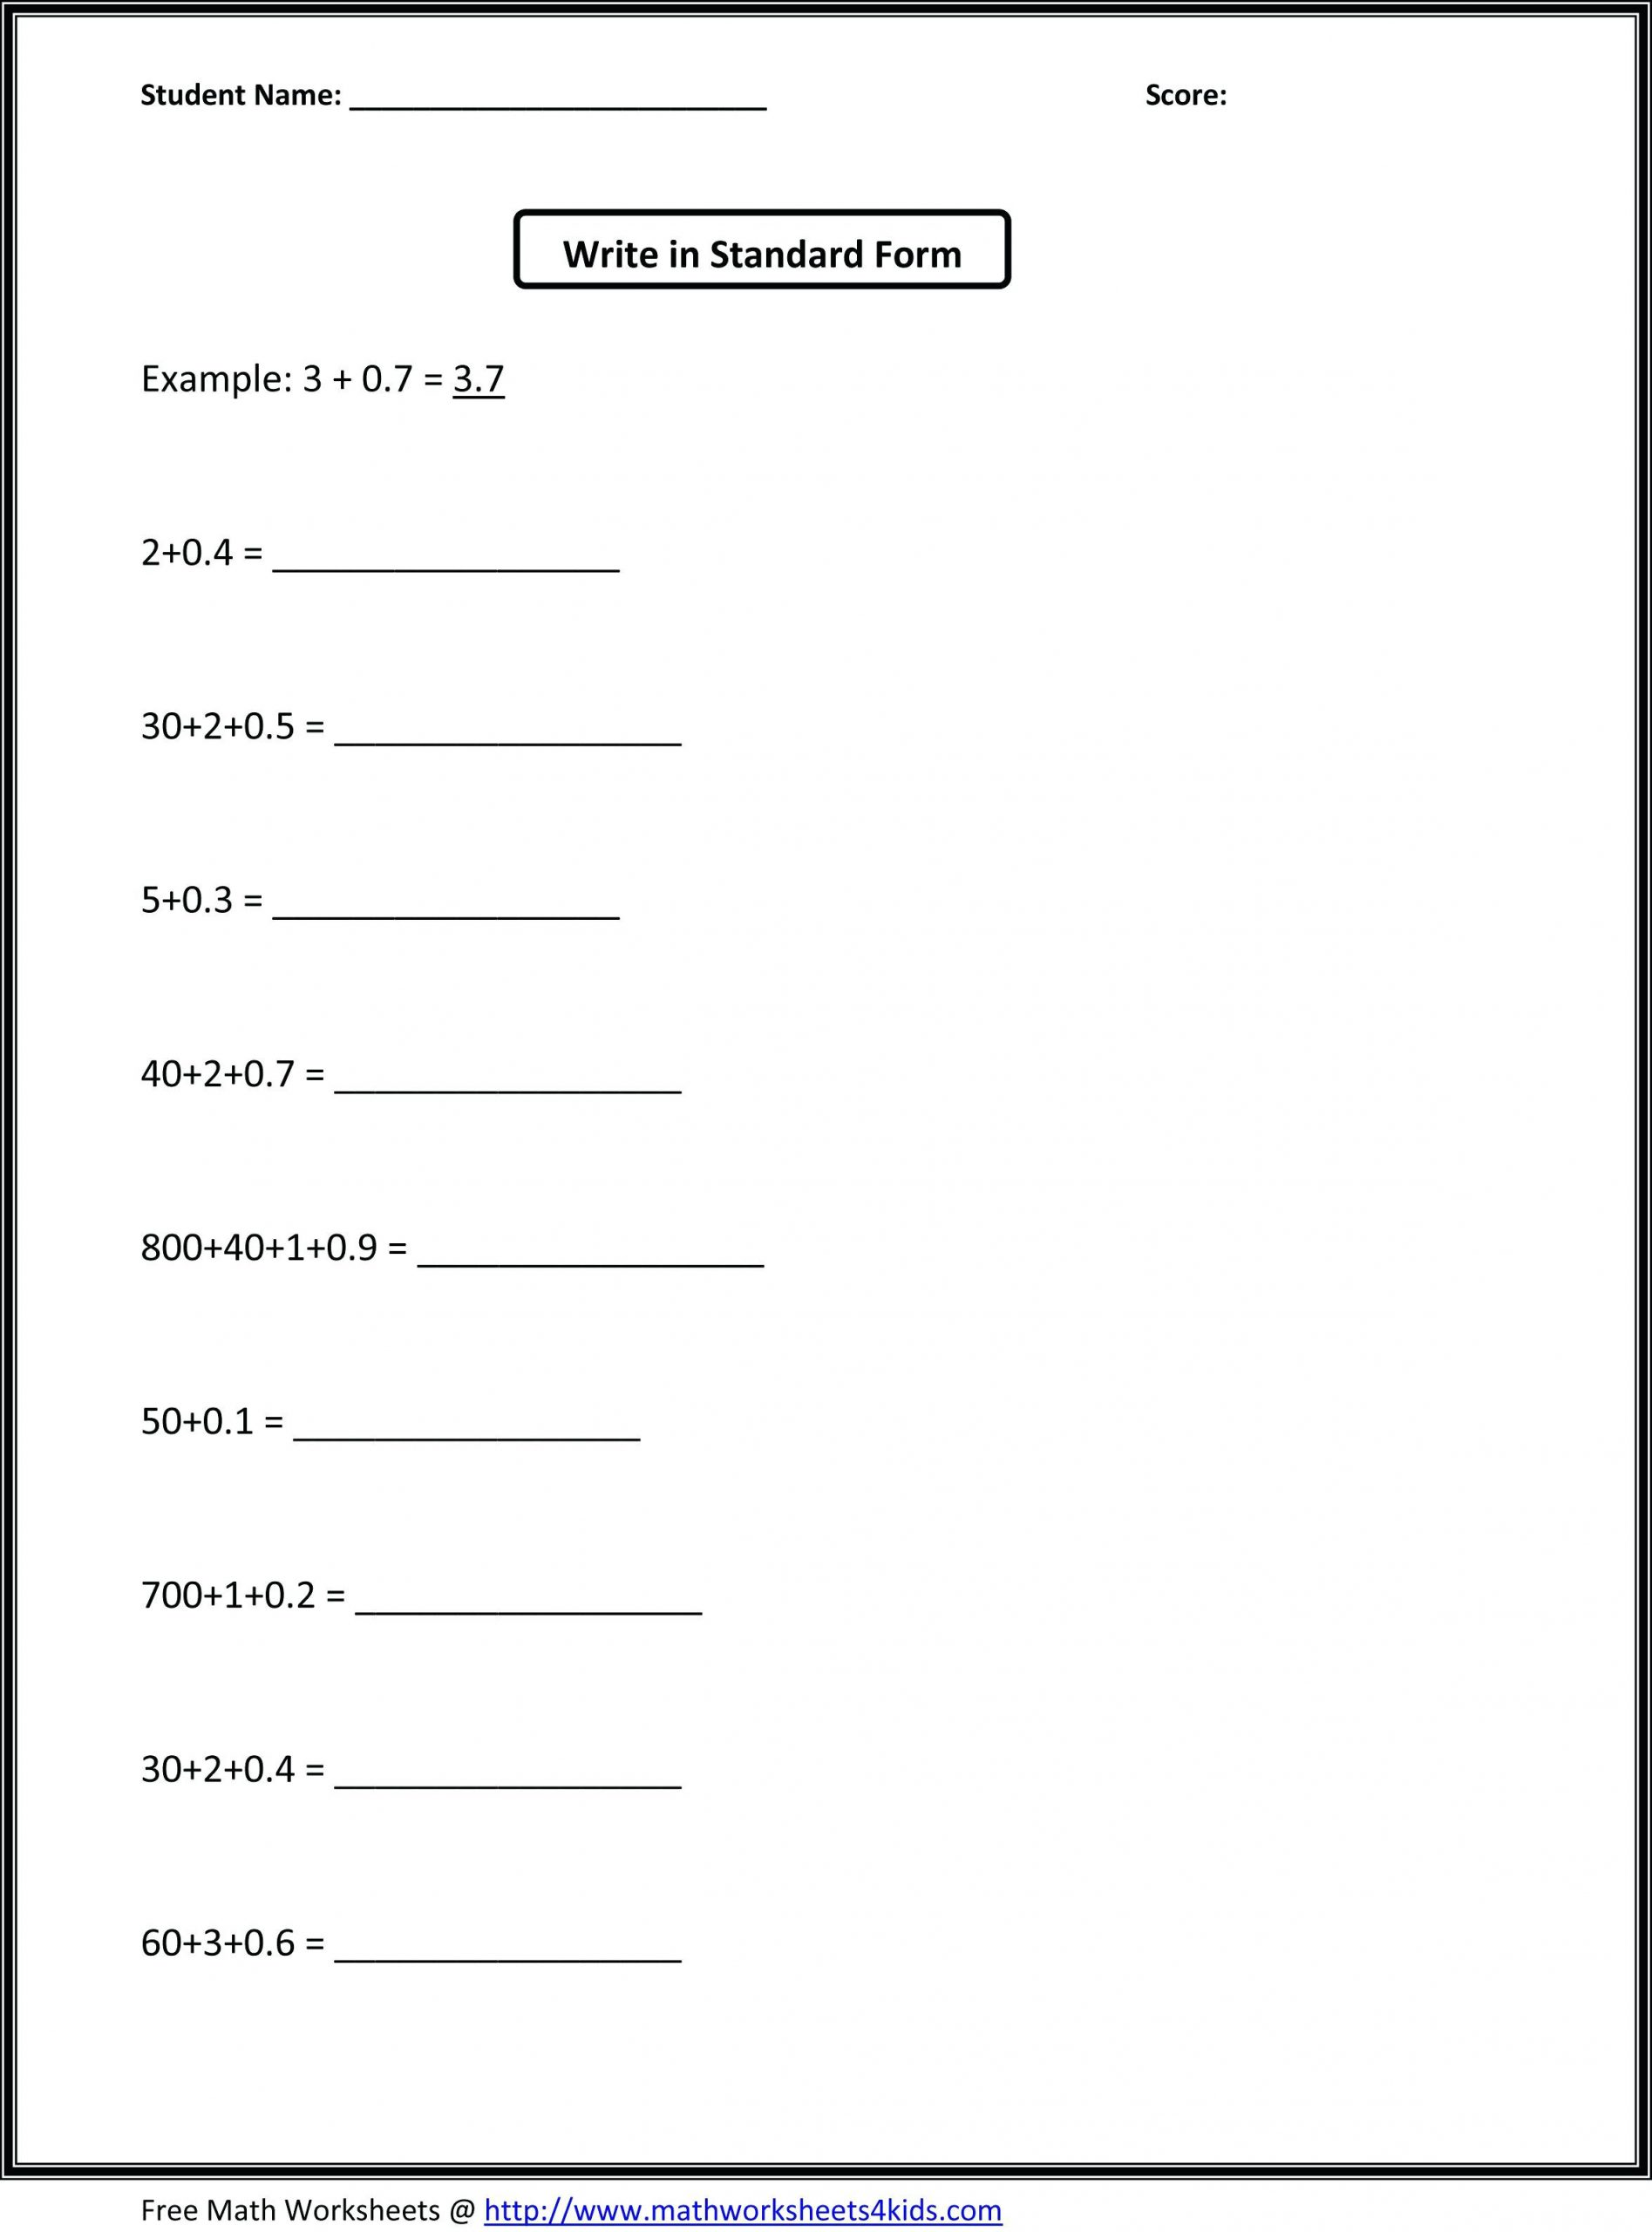 5th Grade Expanded form Worksheets 5th Grade Place Value Worksheets Awesome Collection Fifth